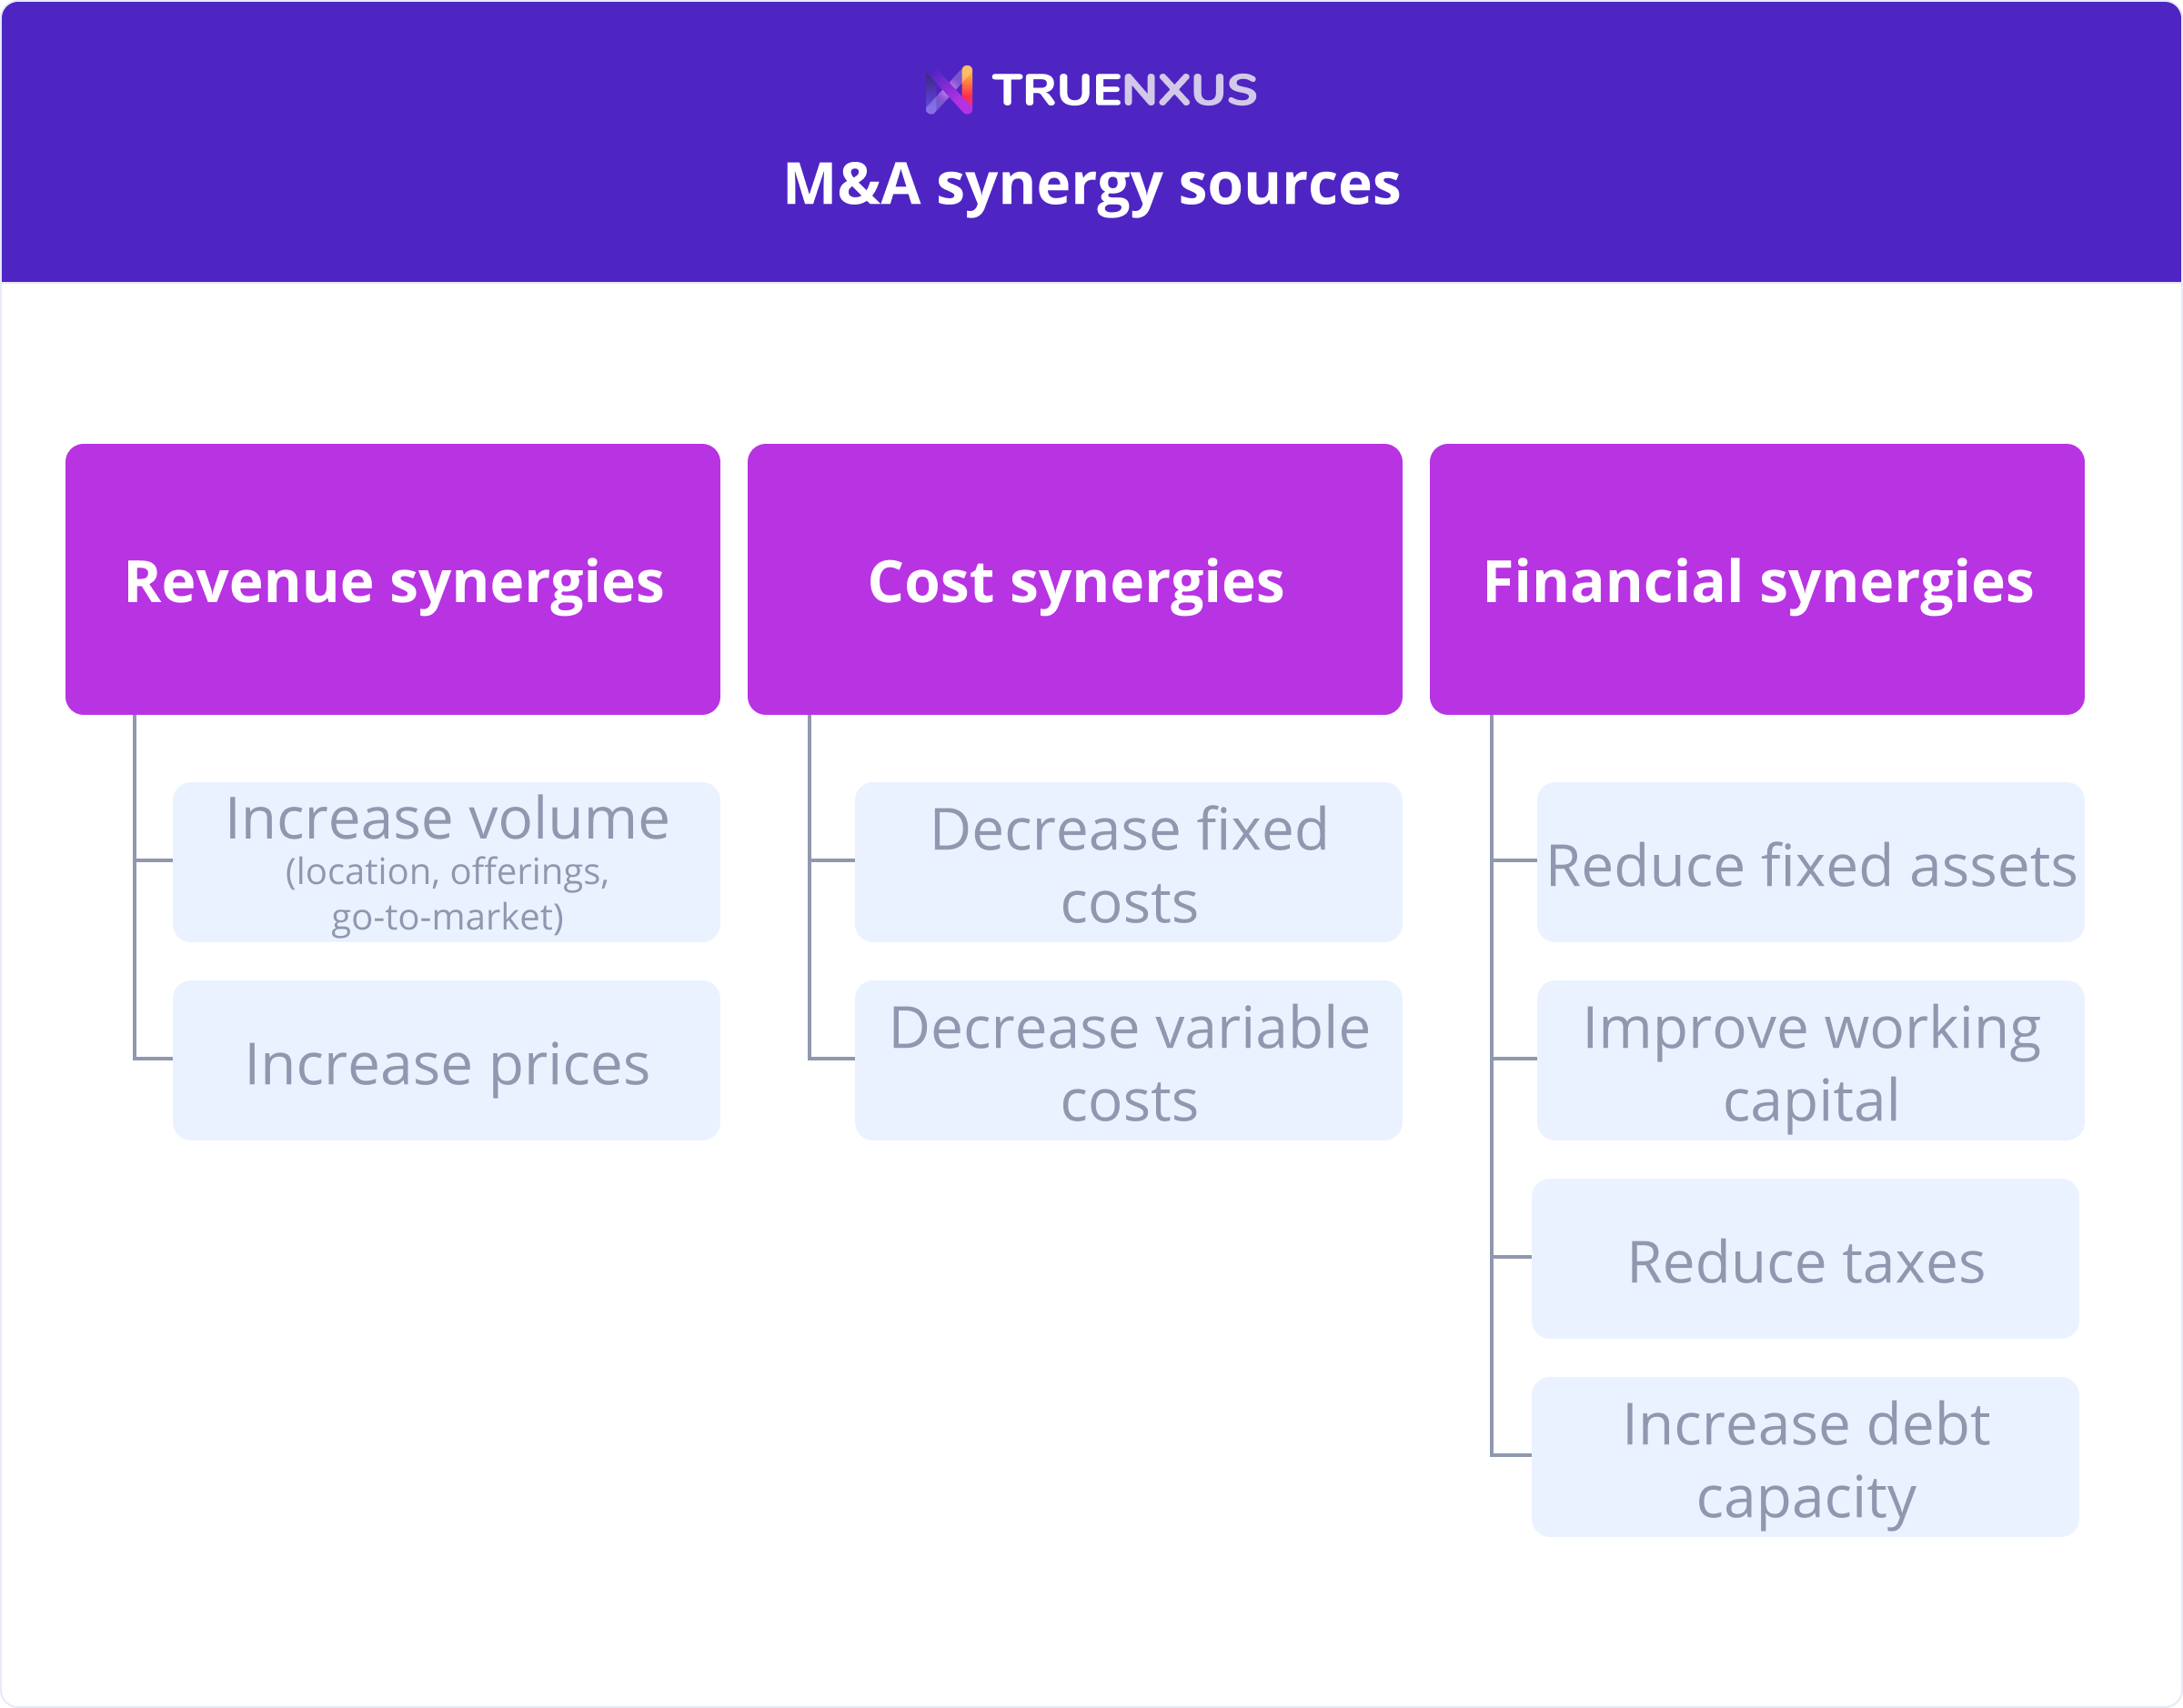 M&A synergies: revenue synergies, cost synergies, financial synergies